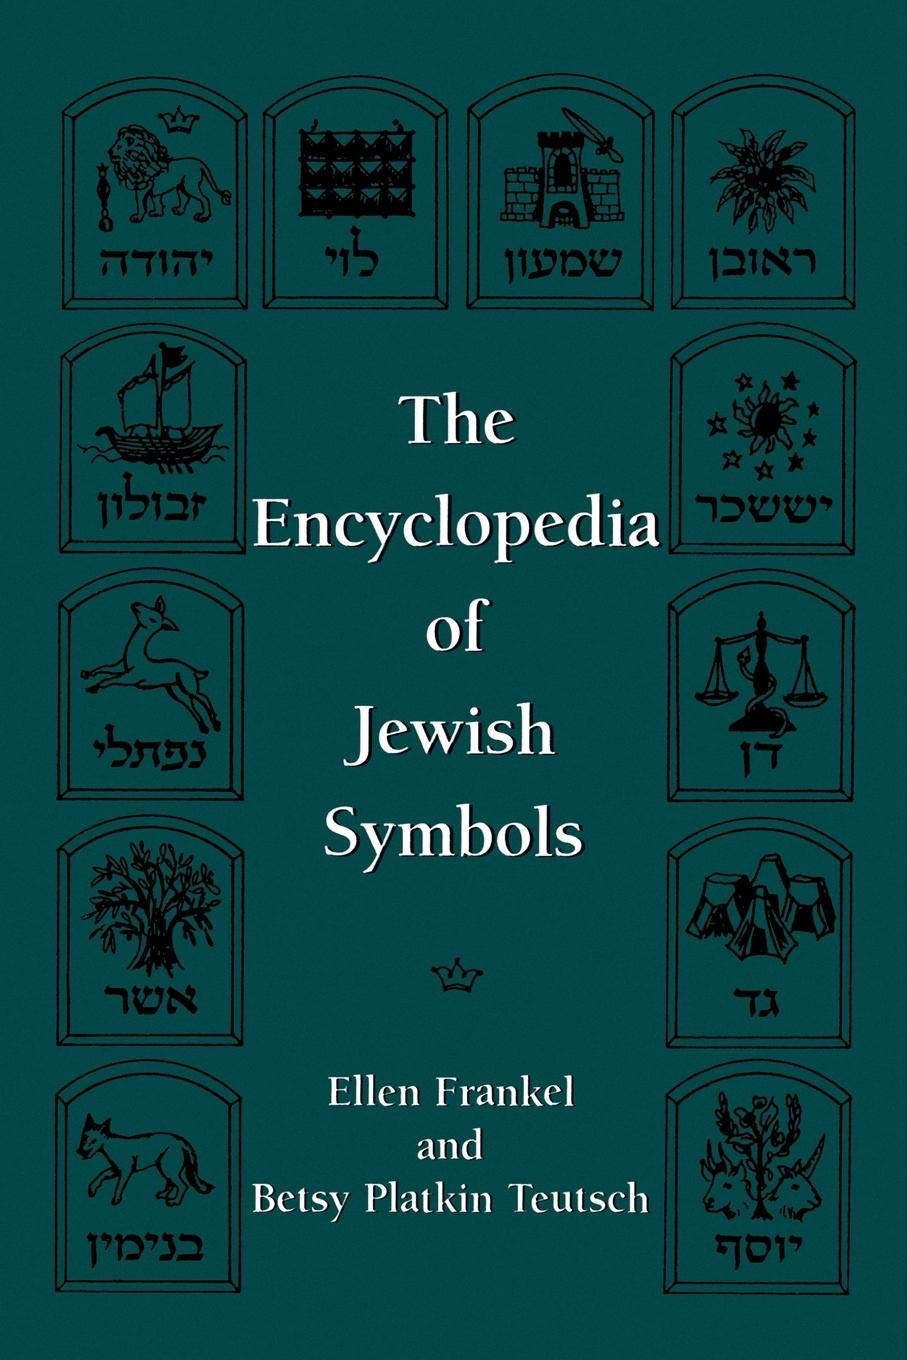 The Encyclopedia Of Jewish Symbols Ellen Frankel Betsy Platkin